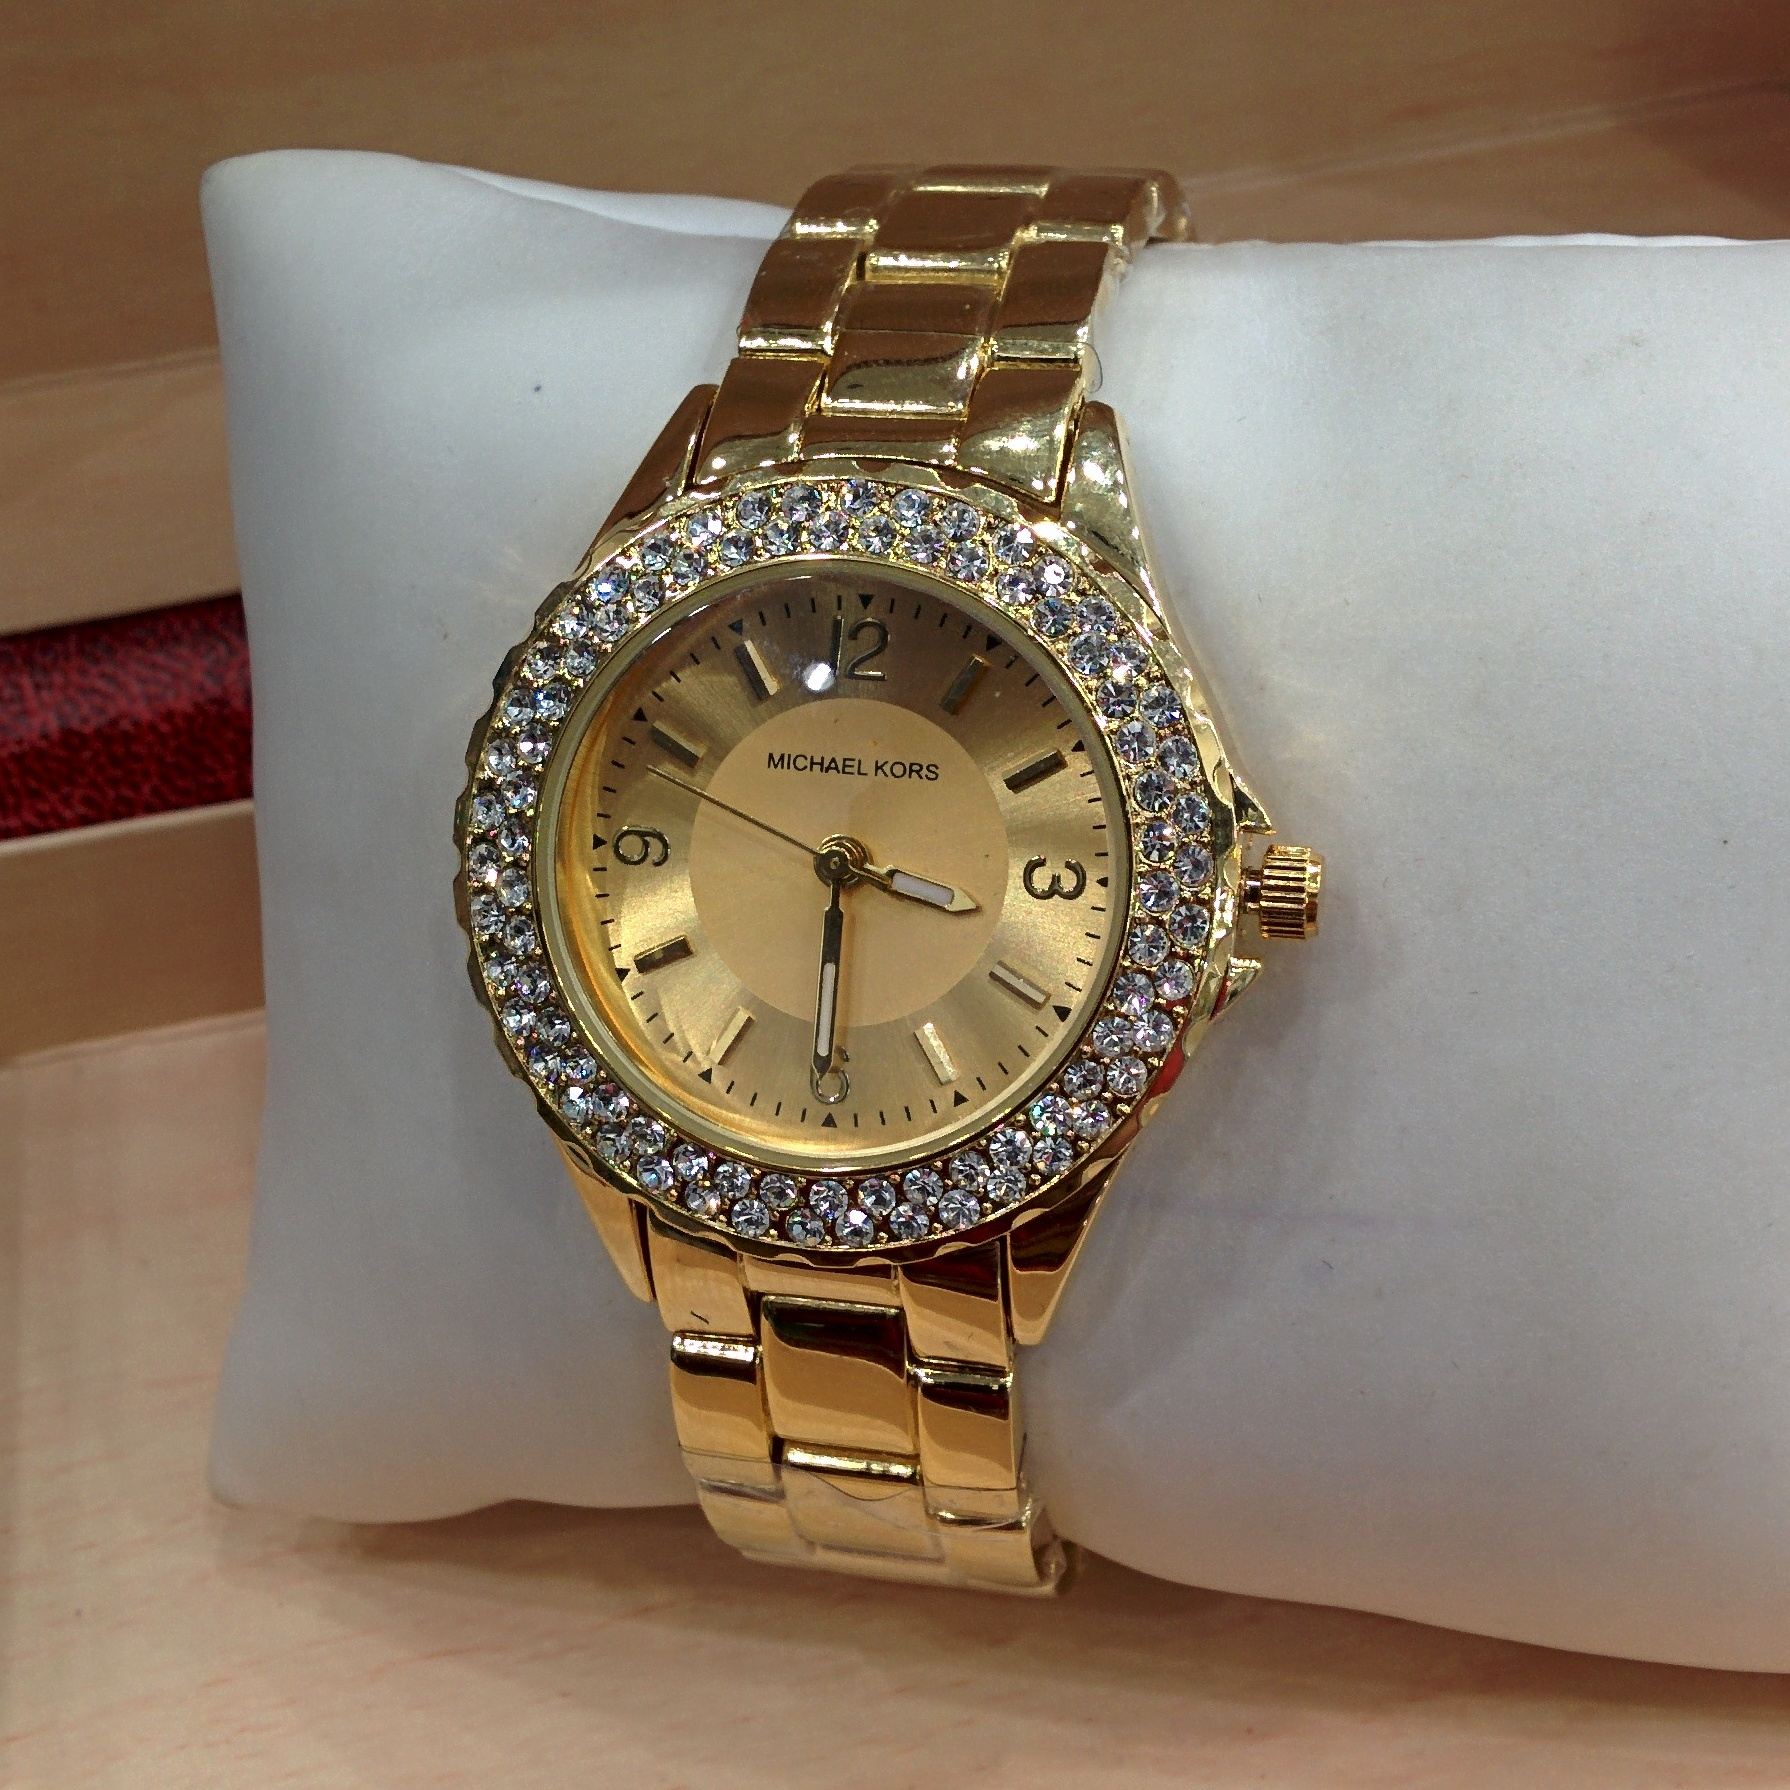 Mk watches feature some great styles including the ladies darci watch range, the parker and the trendy runway series.